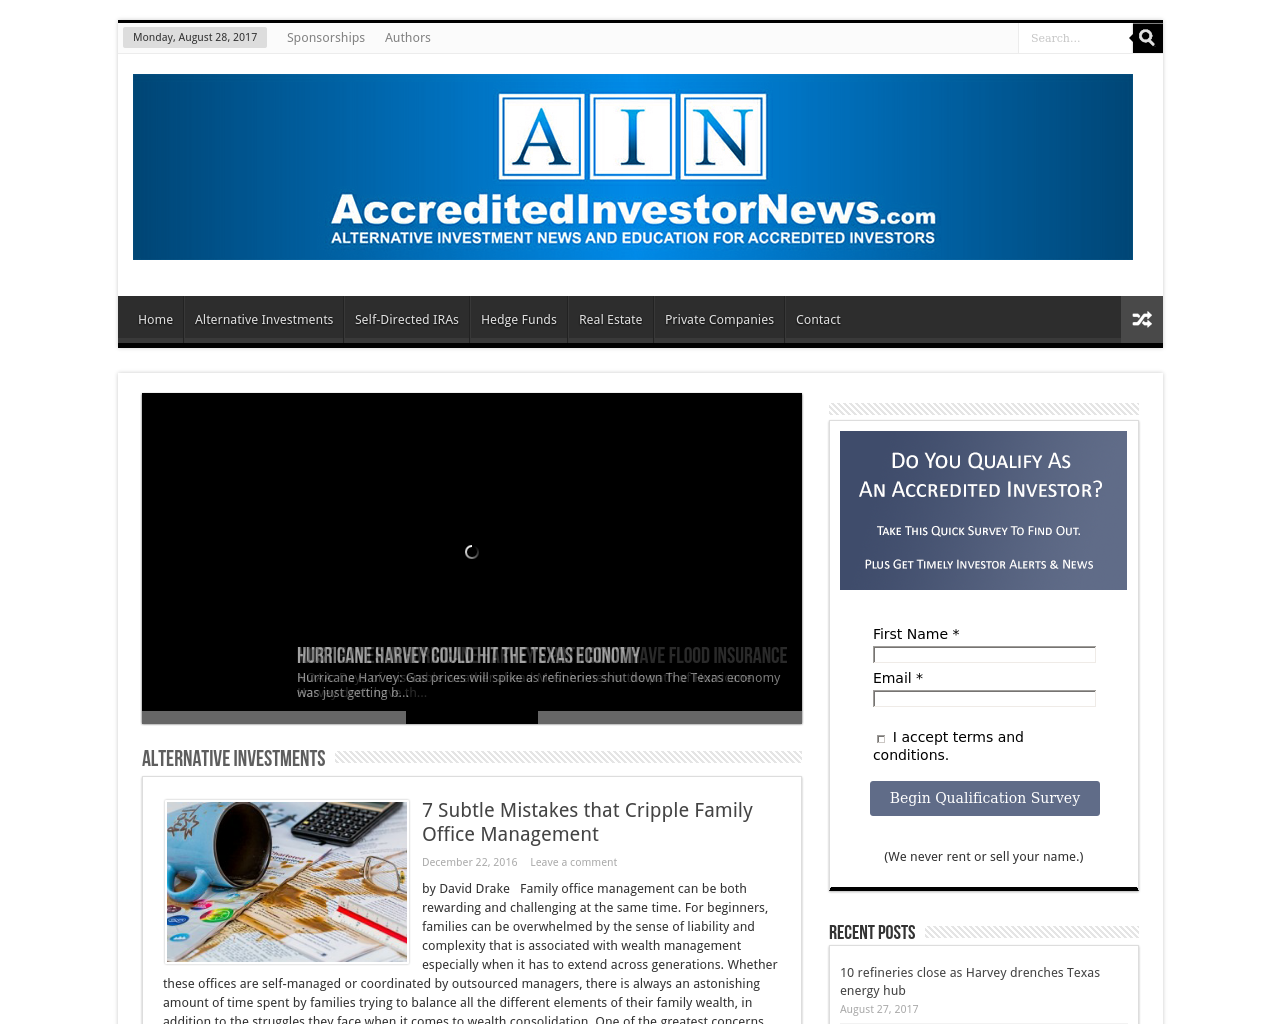 Accredited-Investor-News-Advertising-Reviews-Pricing